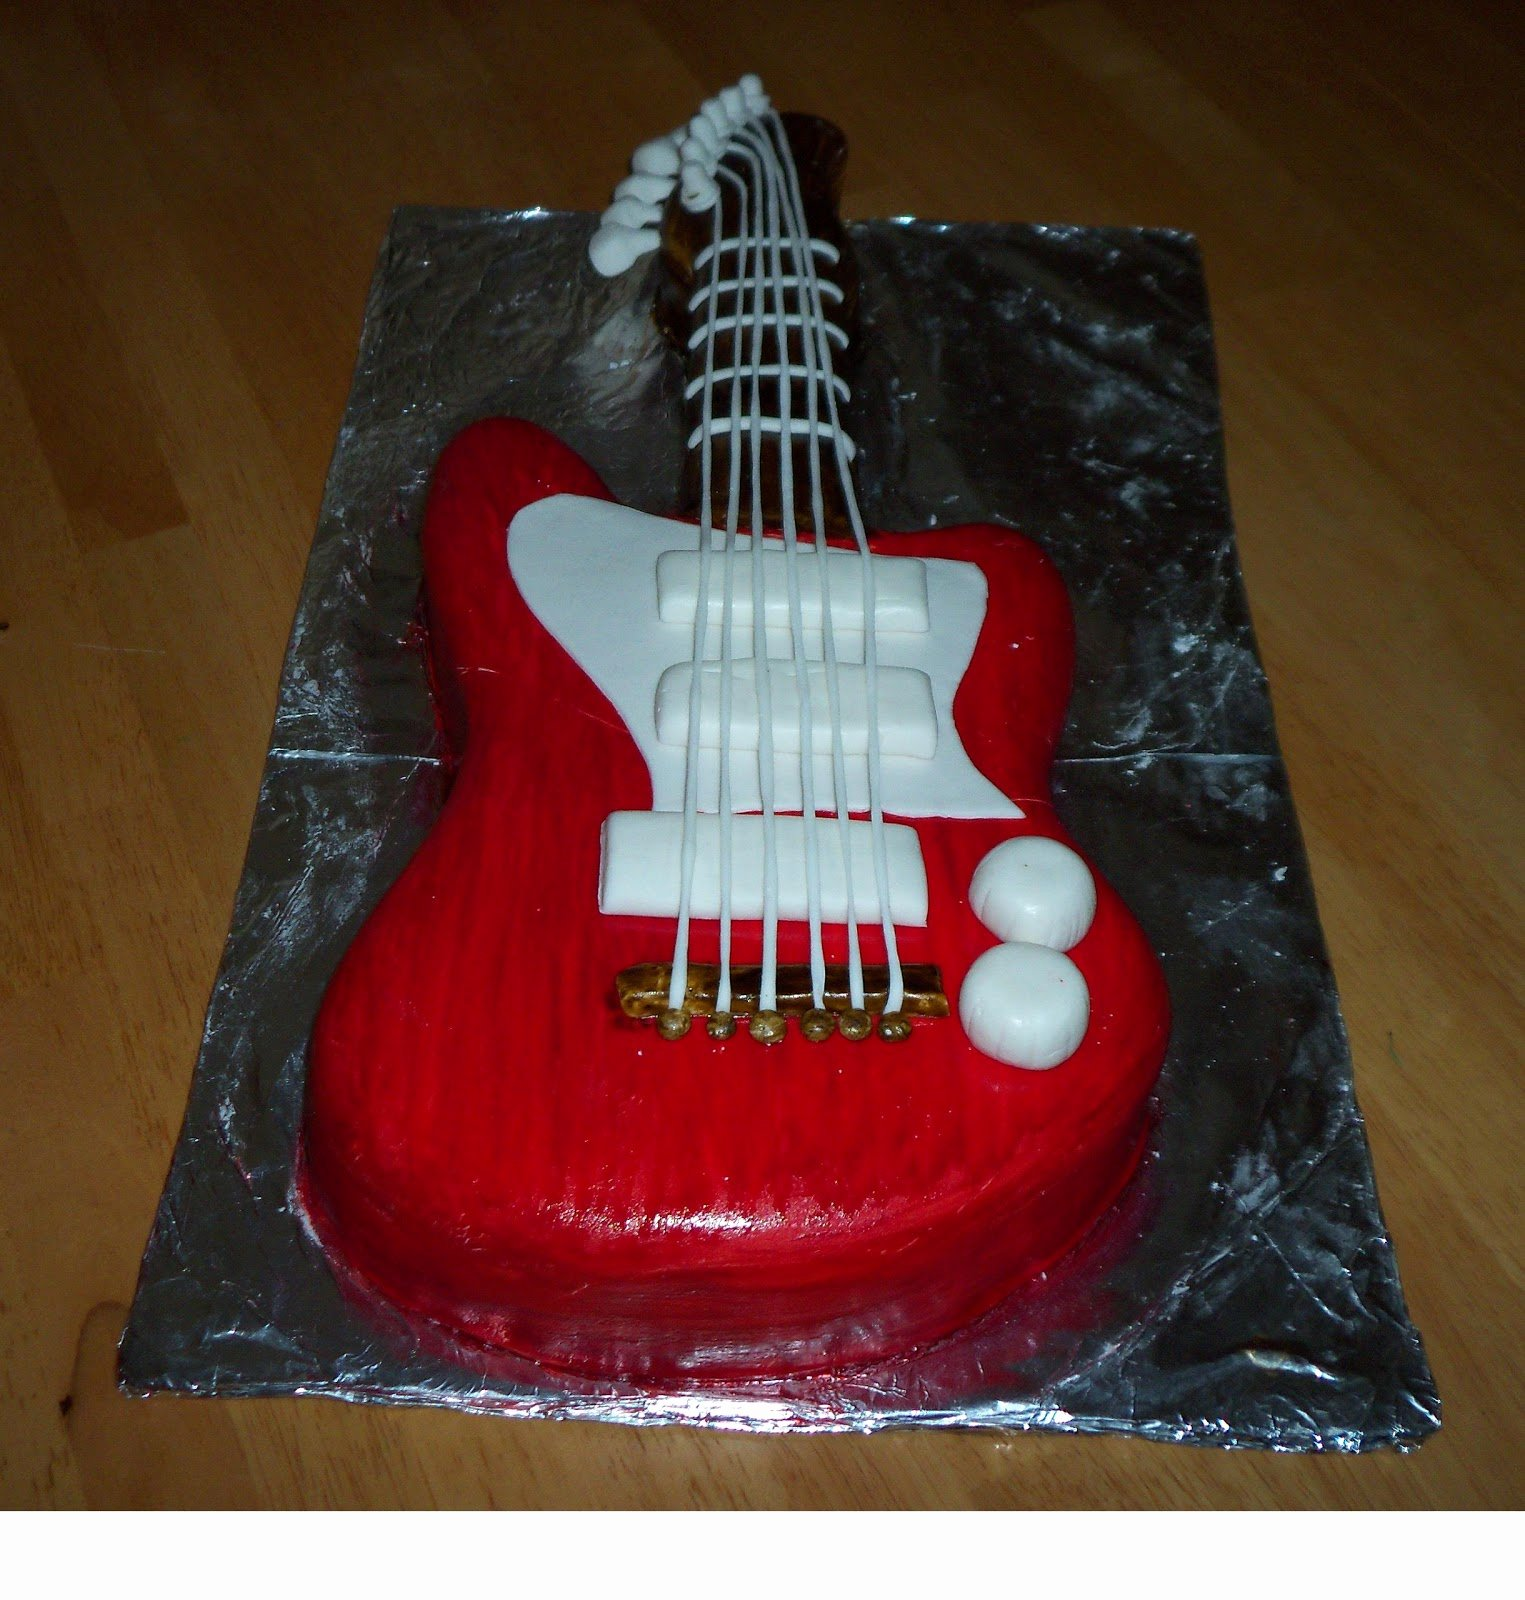 Guitar Cake Template New 1525px